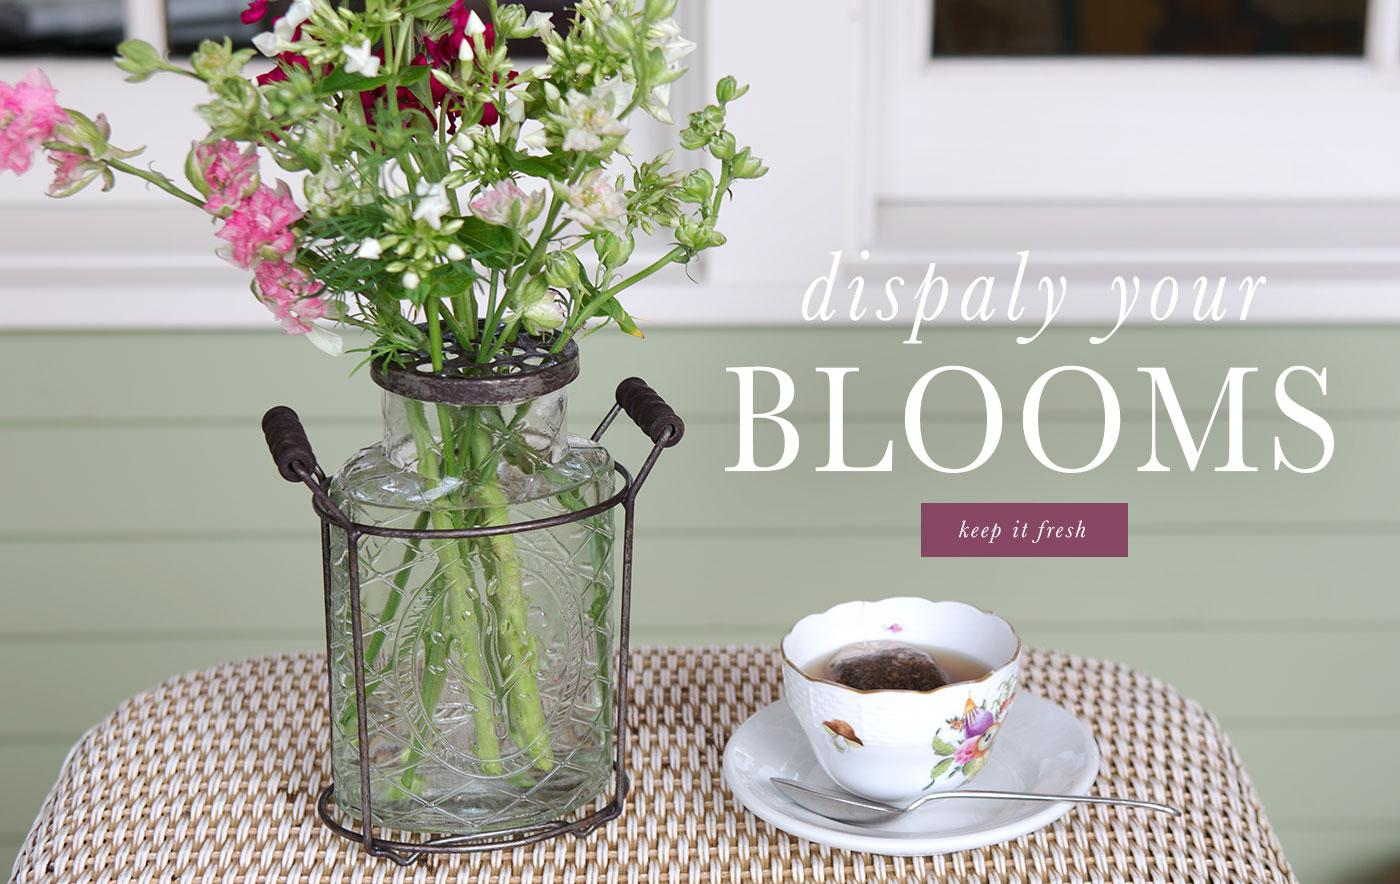 Display Your Blooms